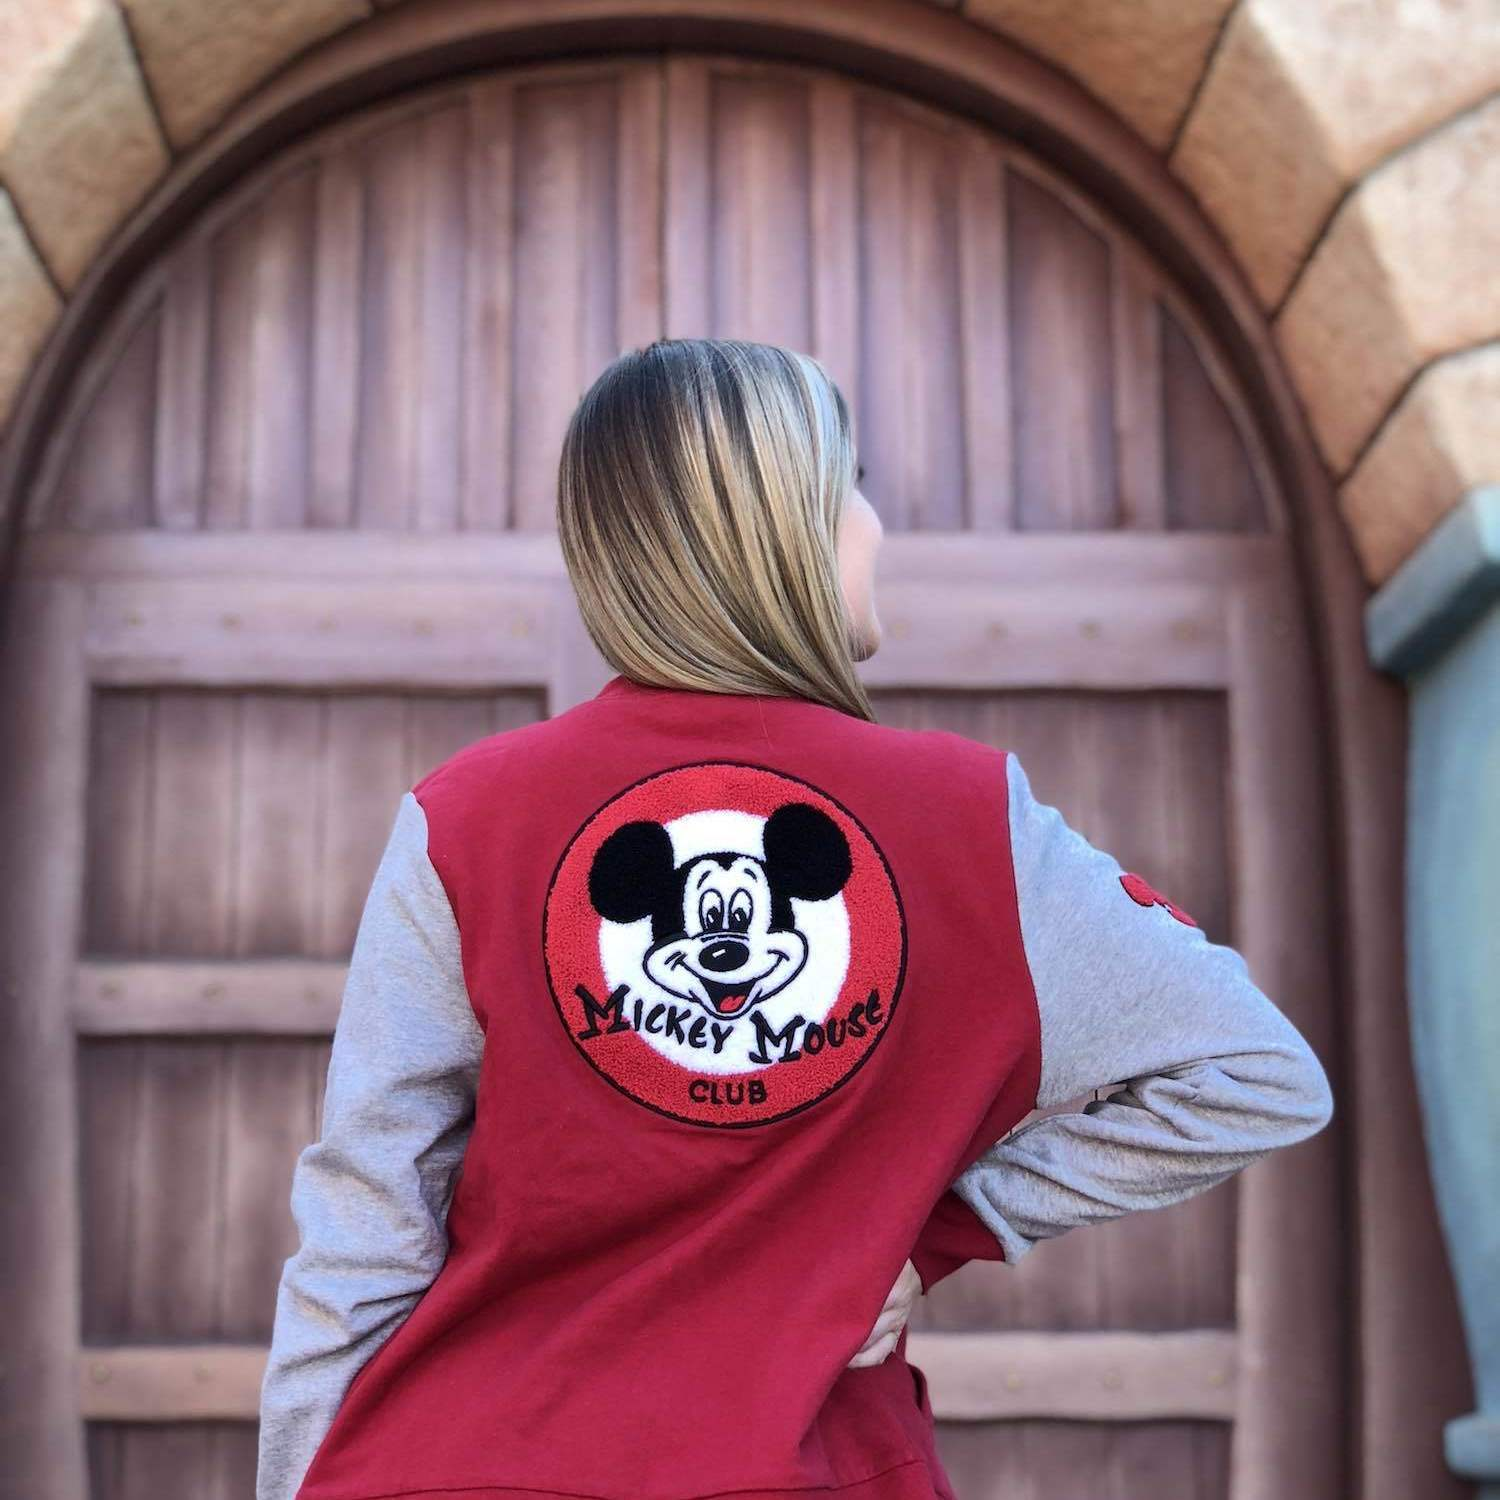 We're Loving the Vintage Vibes of This New Mickey Mouse Club Collection From the Disney Parks